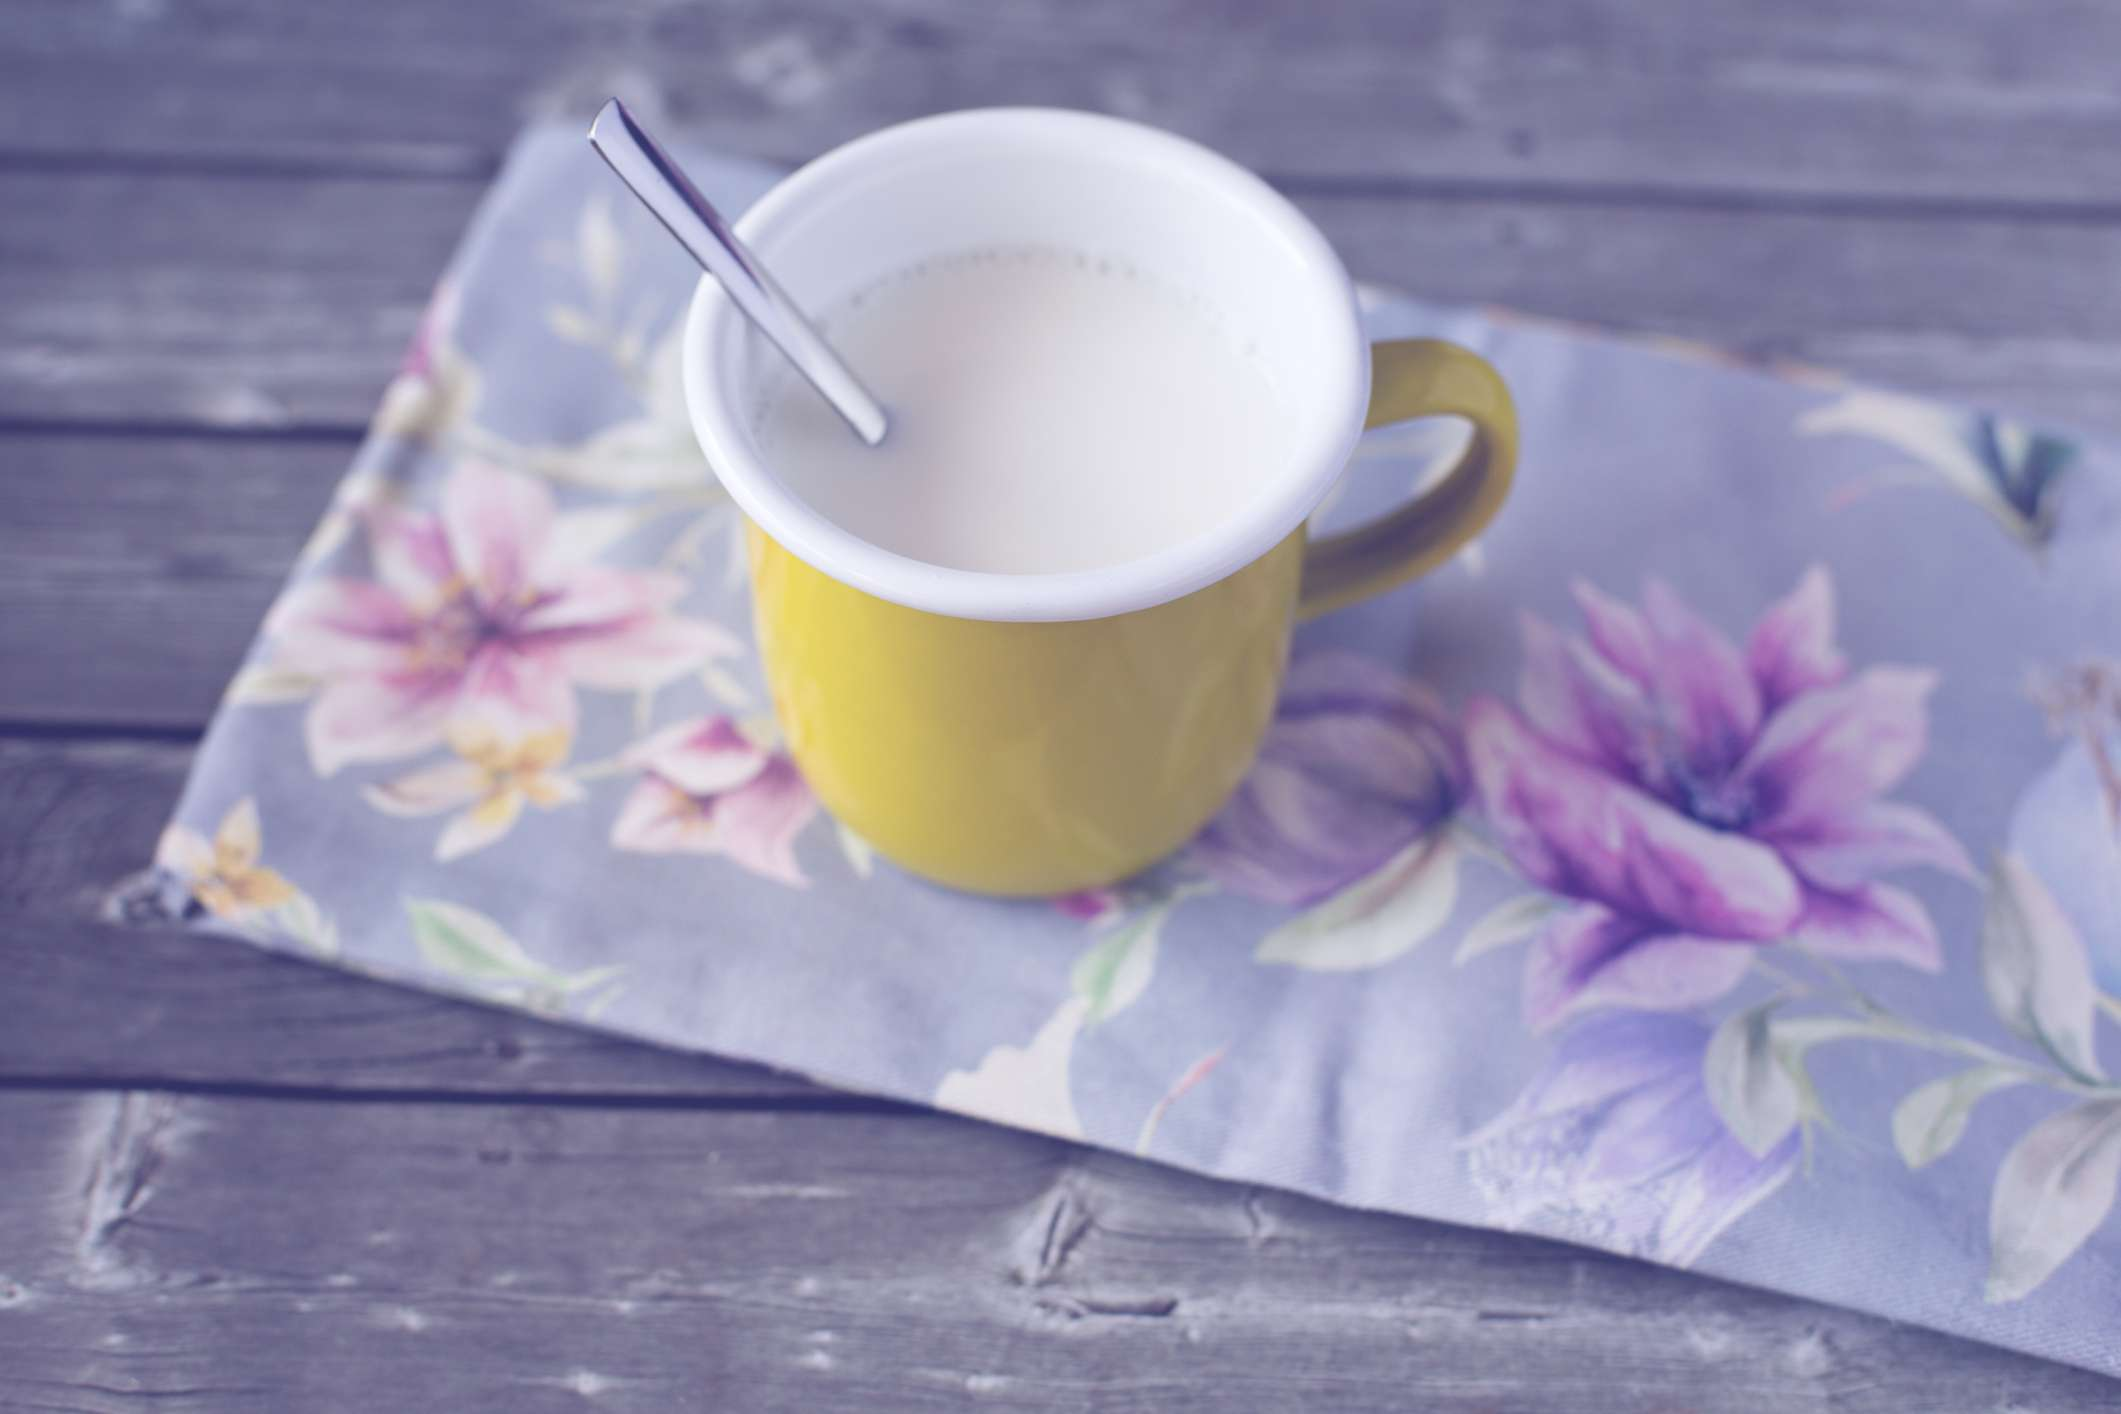 A mug of warm milk with a spoon on a floral napkin.